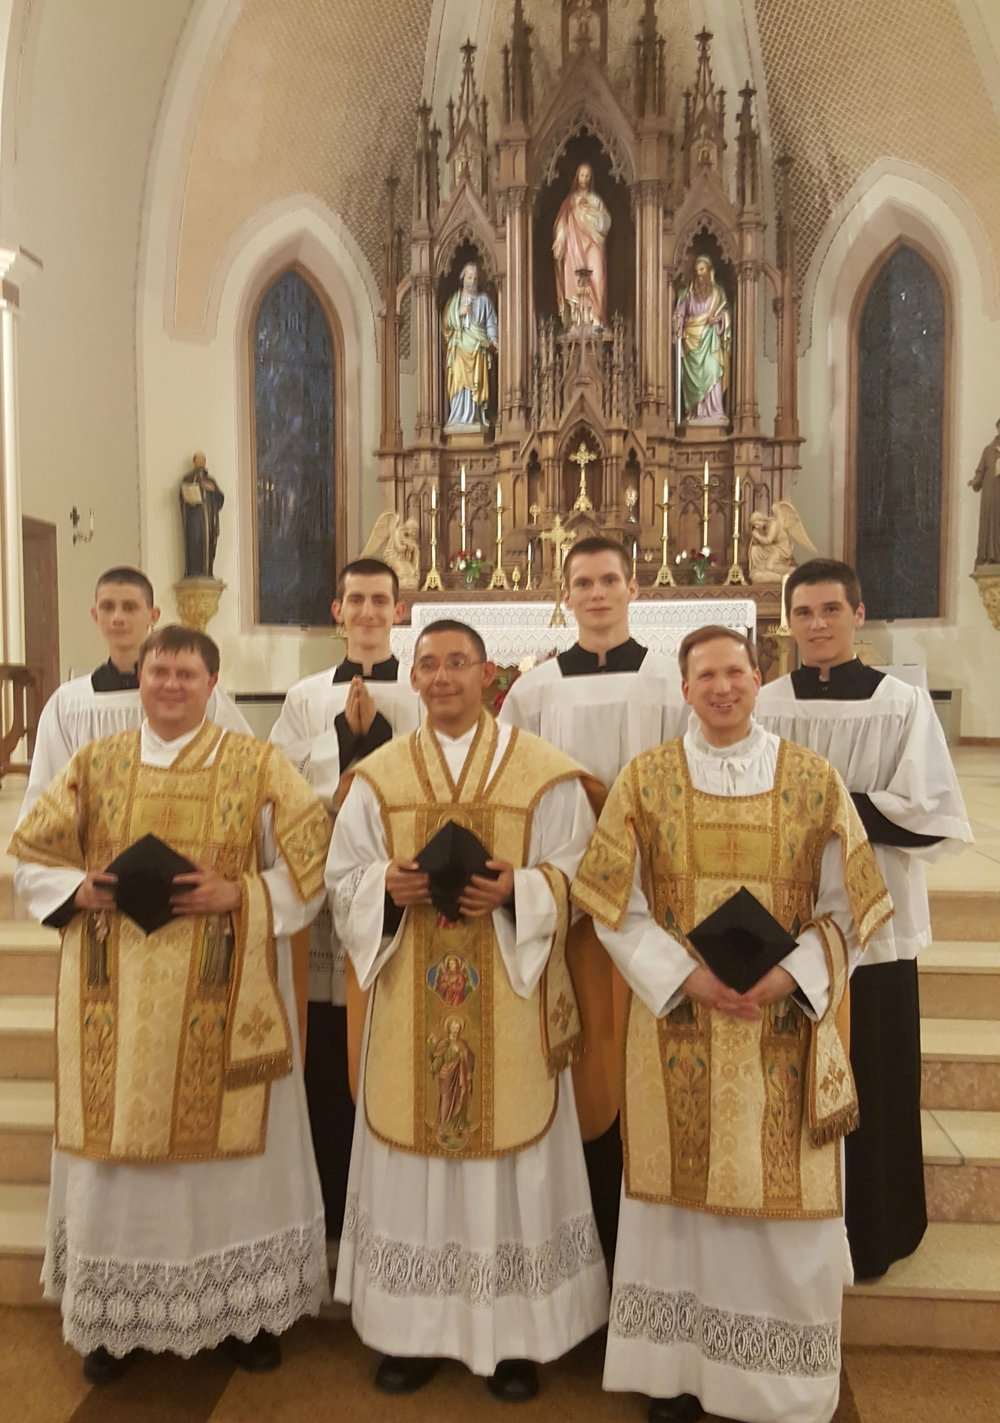 Father Mariano Varela, IVE with diocesan priests for Solemnity of the Sacred Heart at Ss. Peter and Paul in Mankato, Minnesota.